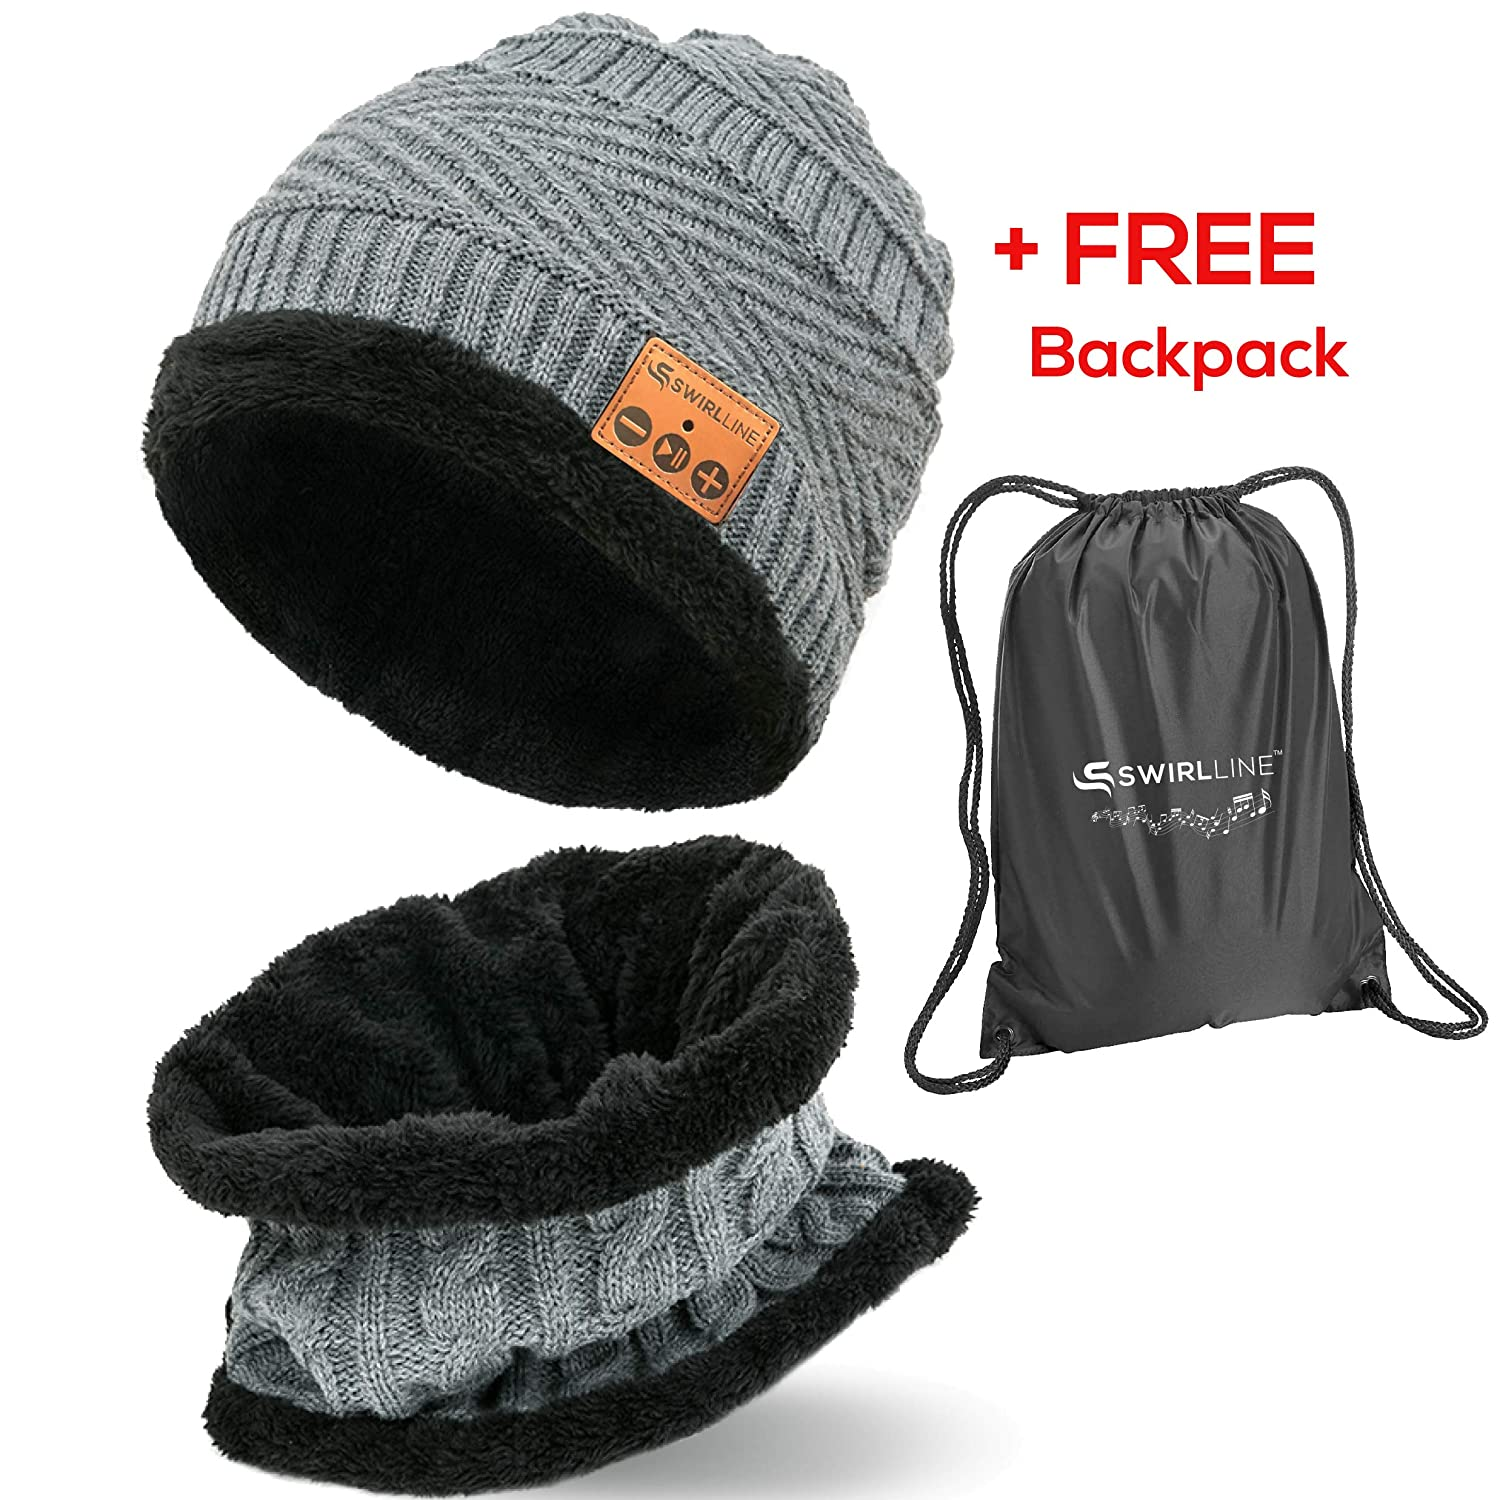 cdf906e2a9b Amazon.com  Wireless Beanie - Wireless Headphones Hat and Scarf Set for  Winter Outdoor Men Women Warm Knitted Music Hat With Backpack - Built-in  Microphone  ...